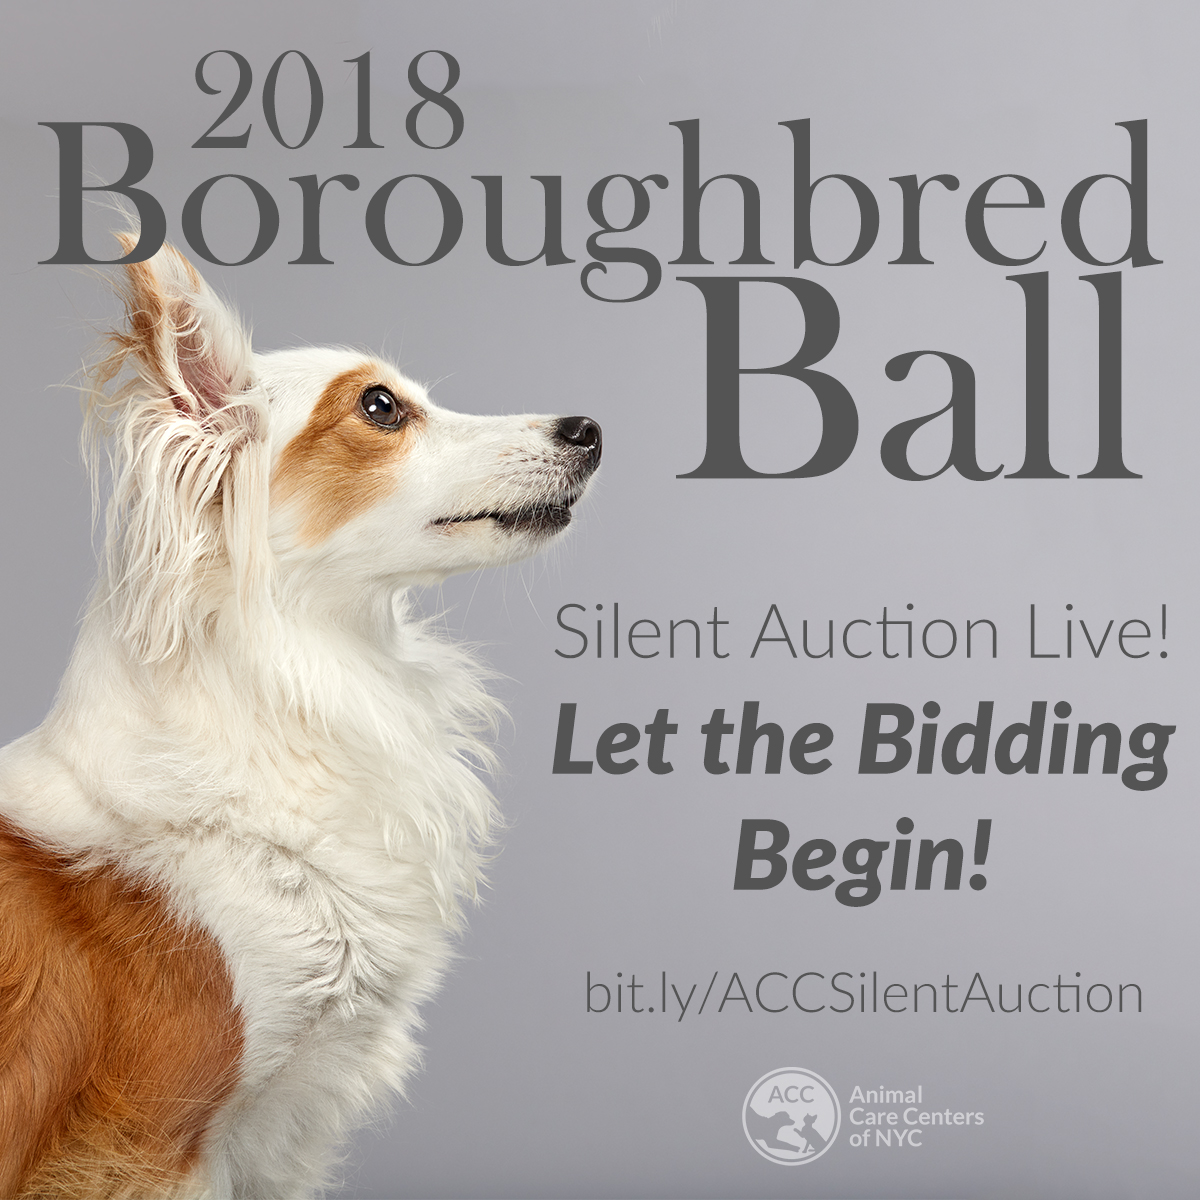 Silent Auction Live boroughbred ball 2018